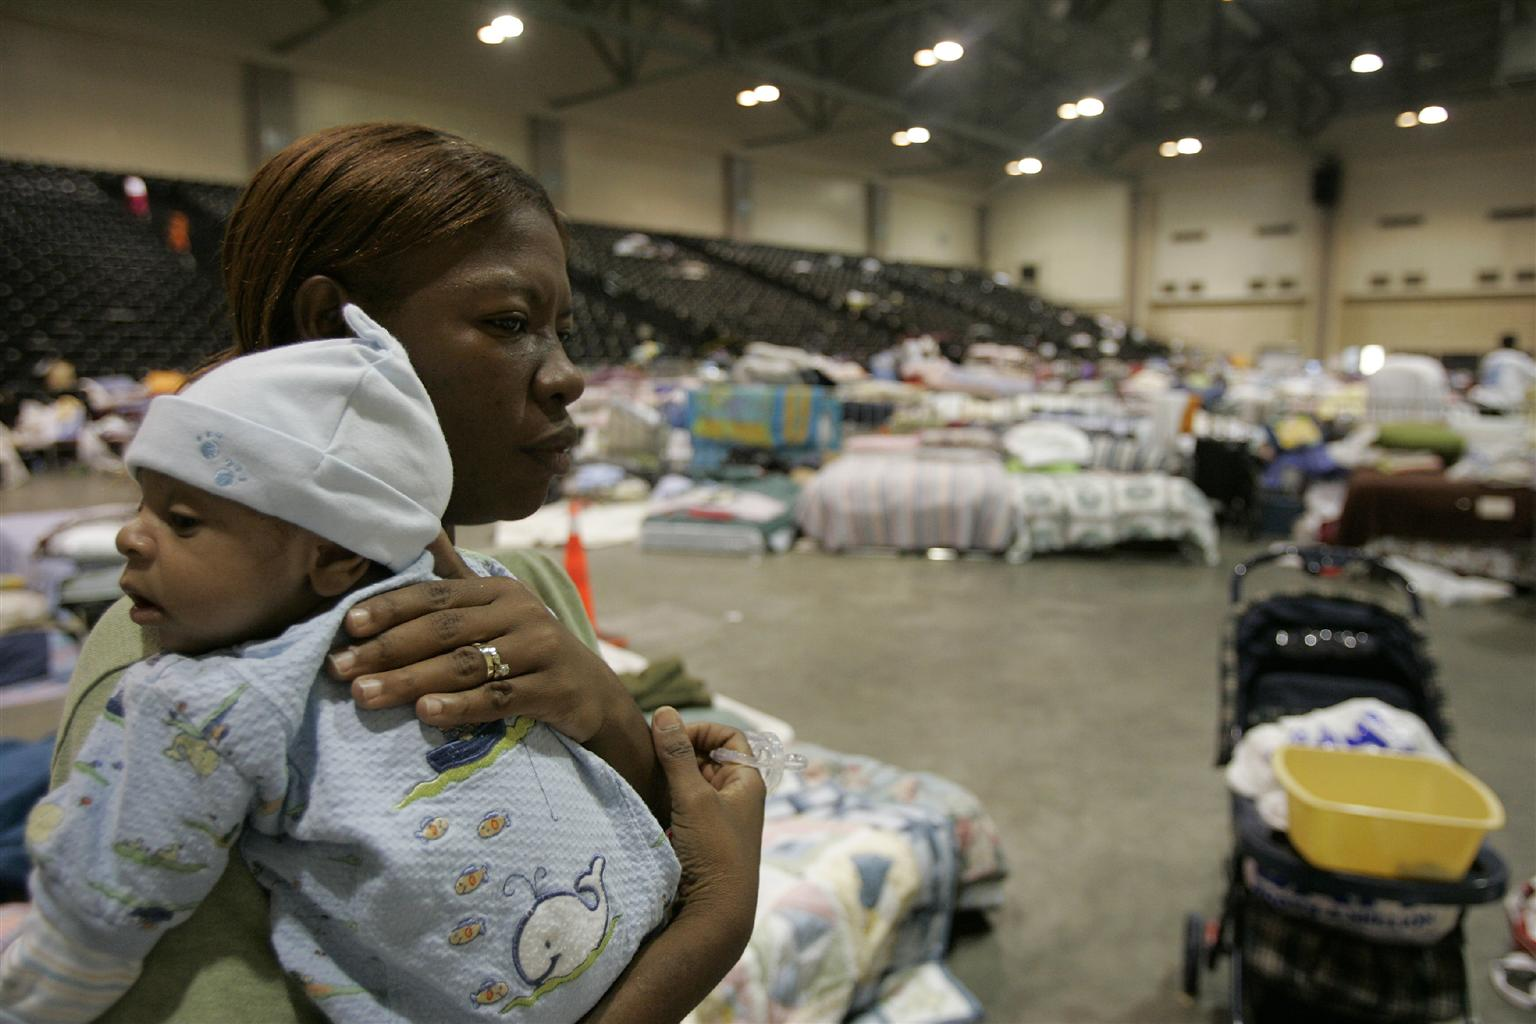 A woman carriers her grandson at a shelter for people displaced by Hurricane Katrina.